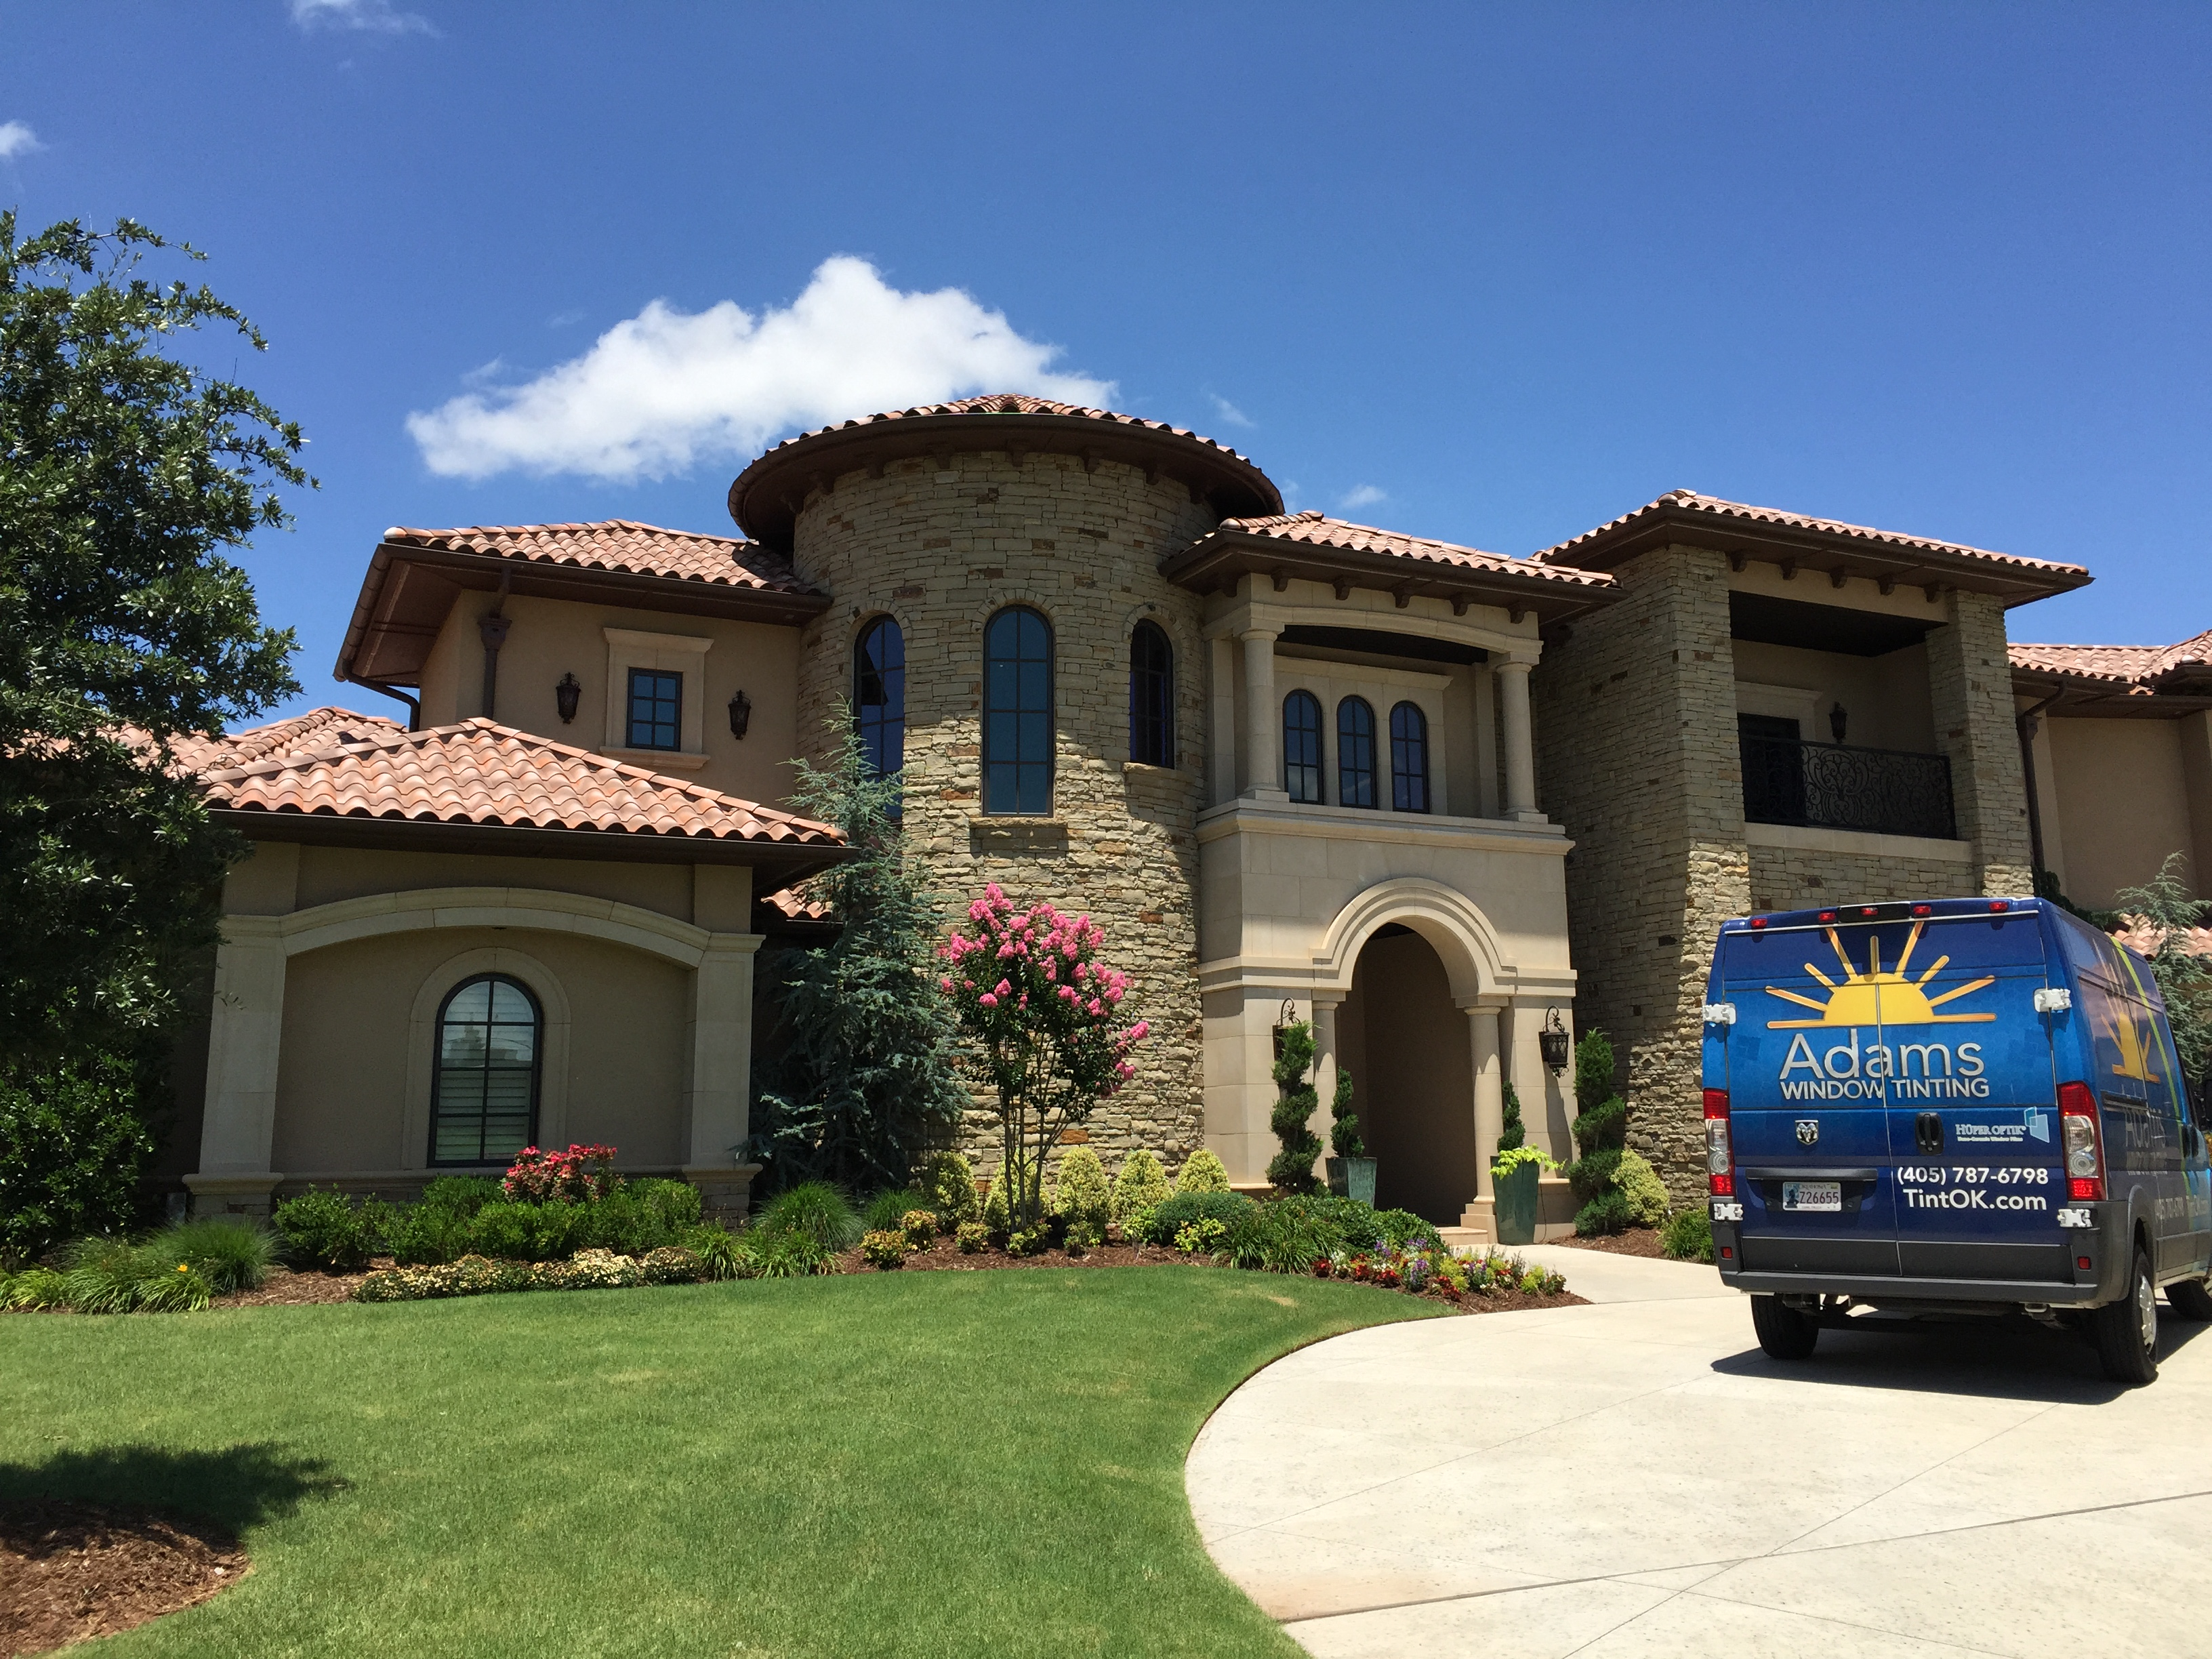 Adams Window Tinting Residential Window Tinting